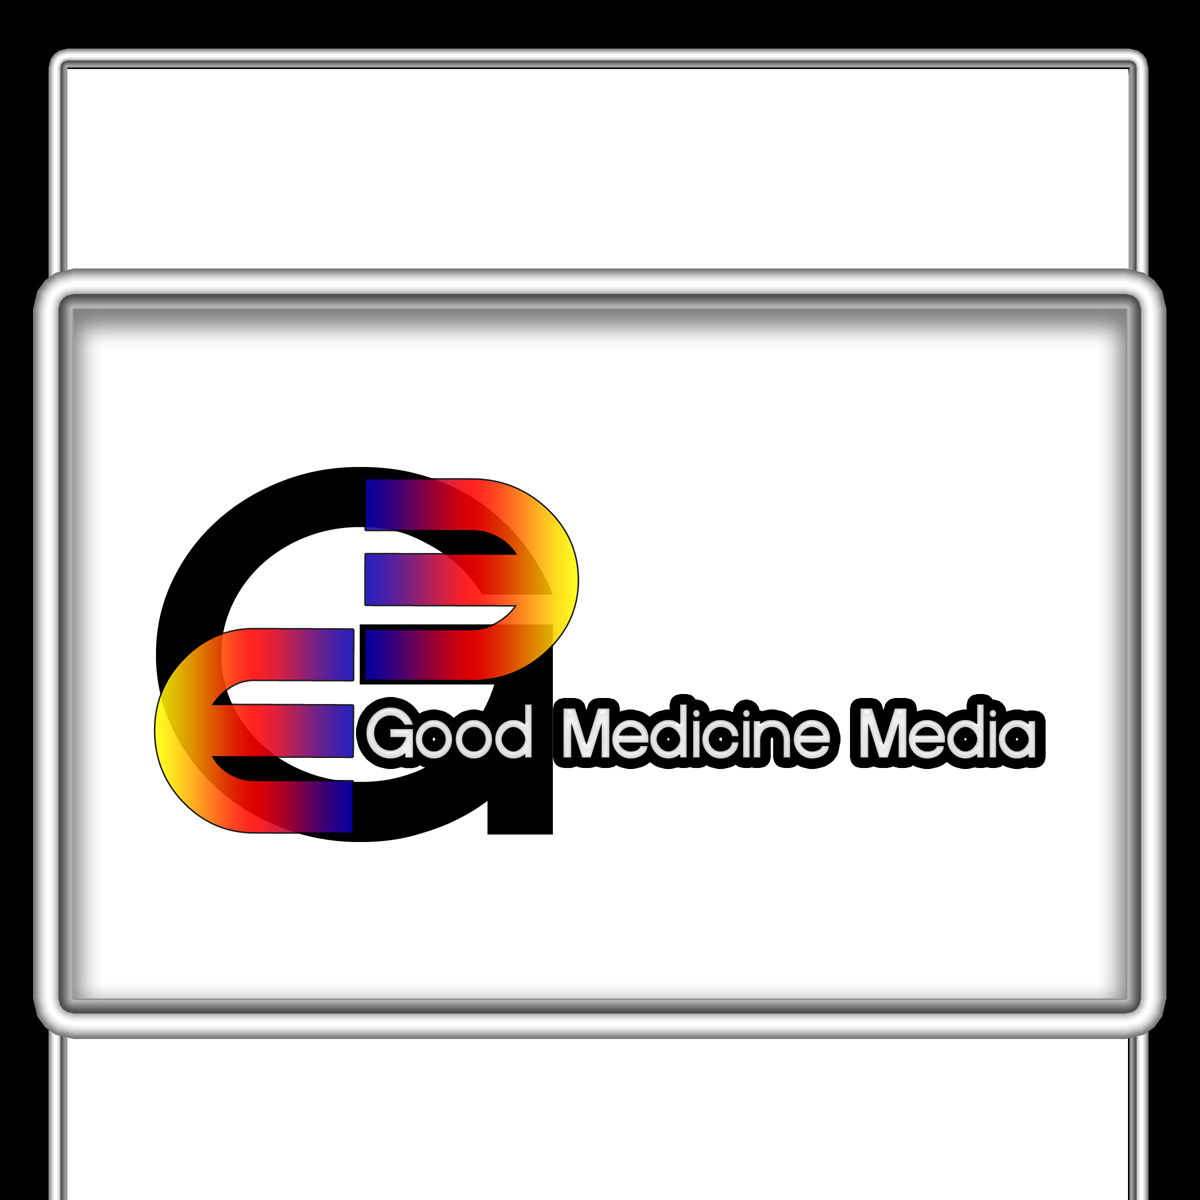 Logo Design by MITUCA ANDREI - Entry No. 6 in the Logo Design Contest Good Medicine Media Logo Design.